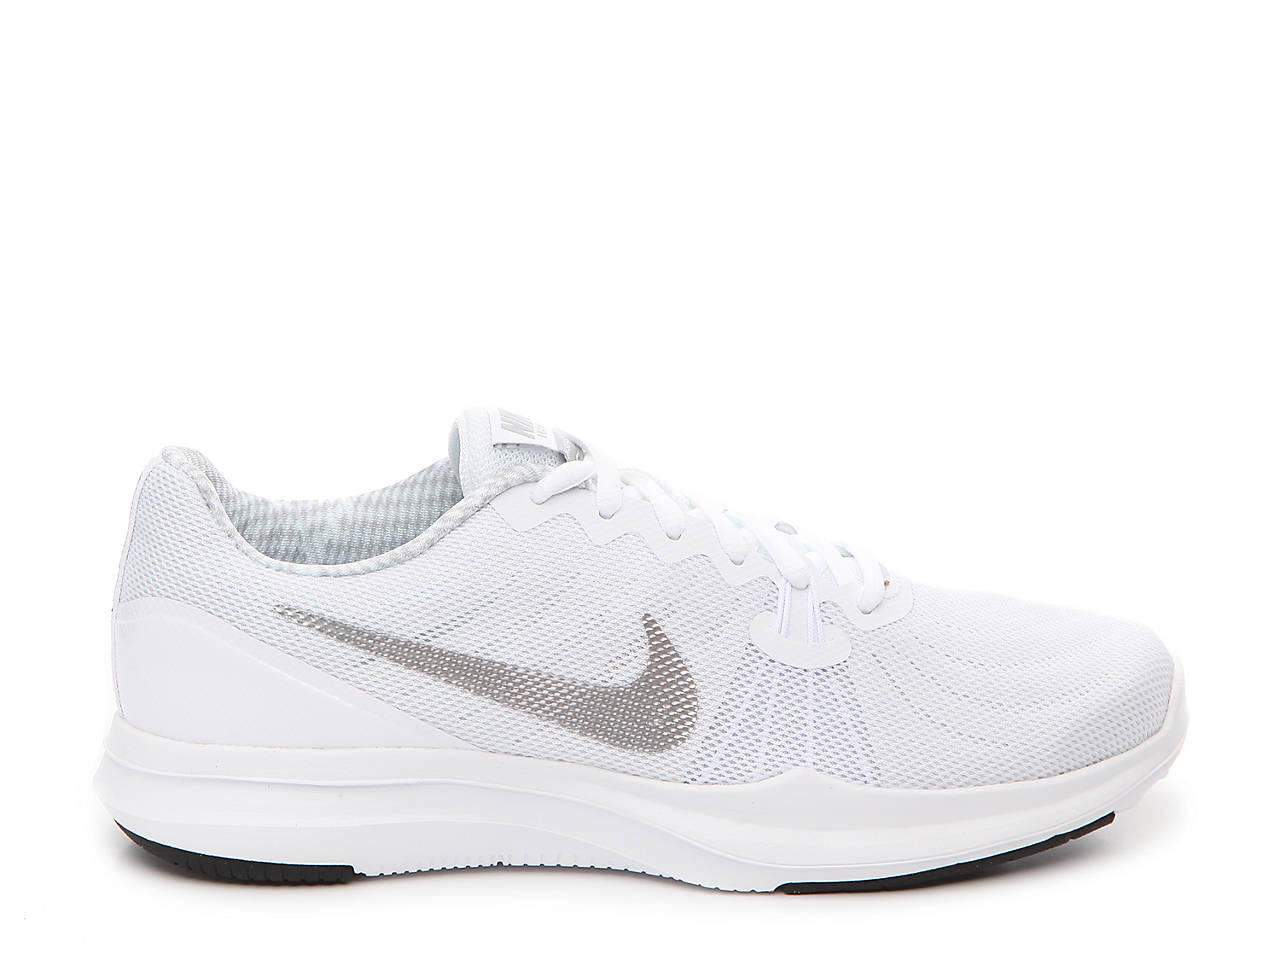 c0ba866460eb Nike In Season TR 7 Training Shoe - Women s Women s Shoes